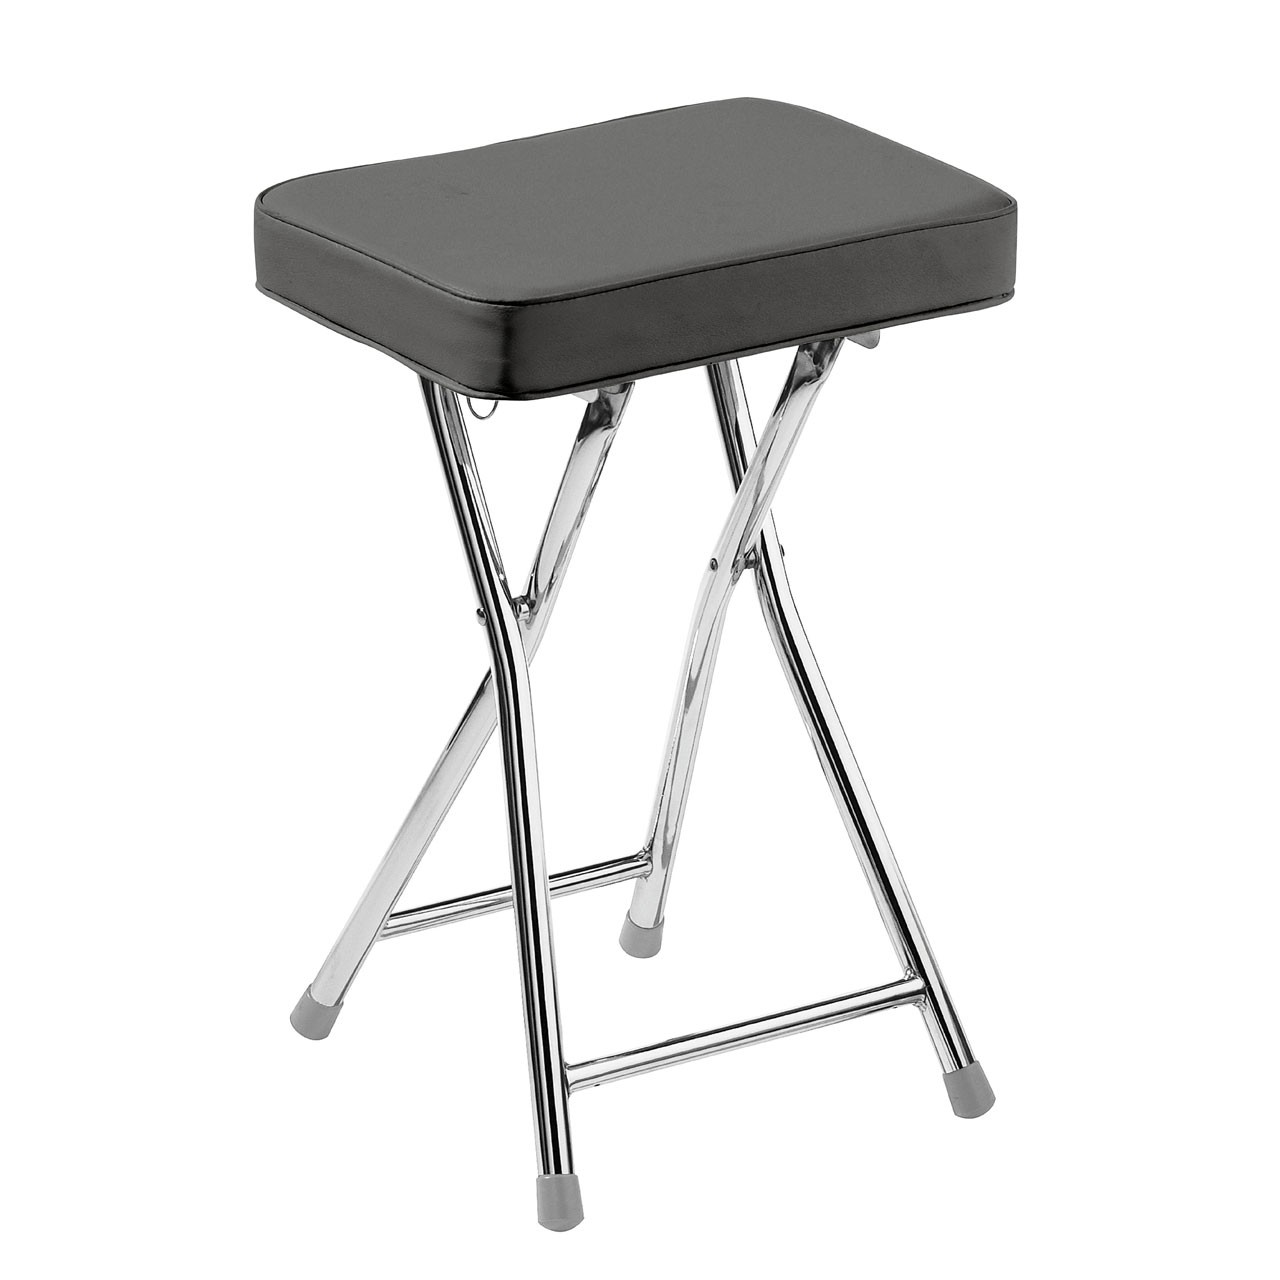 Rectangle Shaped Folding Stool with Chrome Frame - Grey